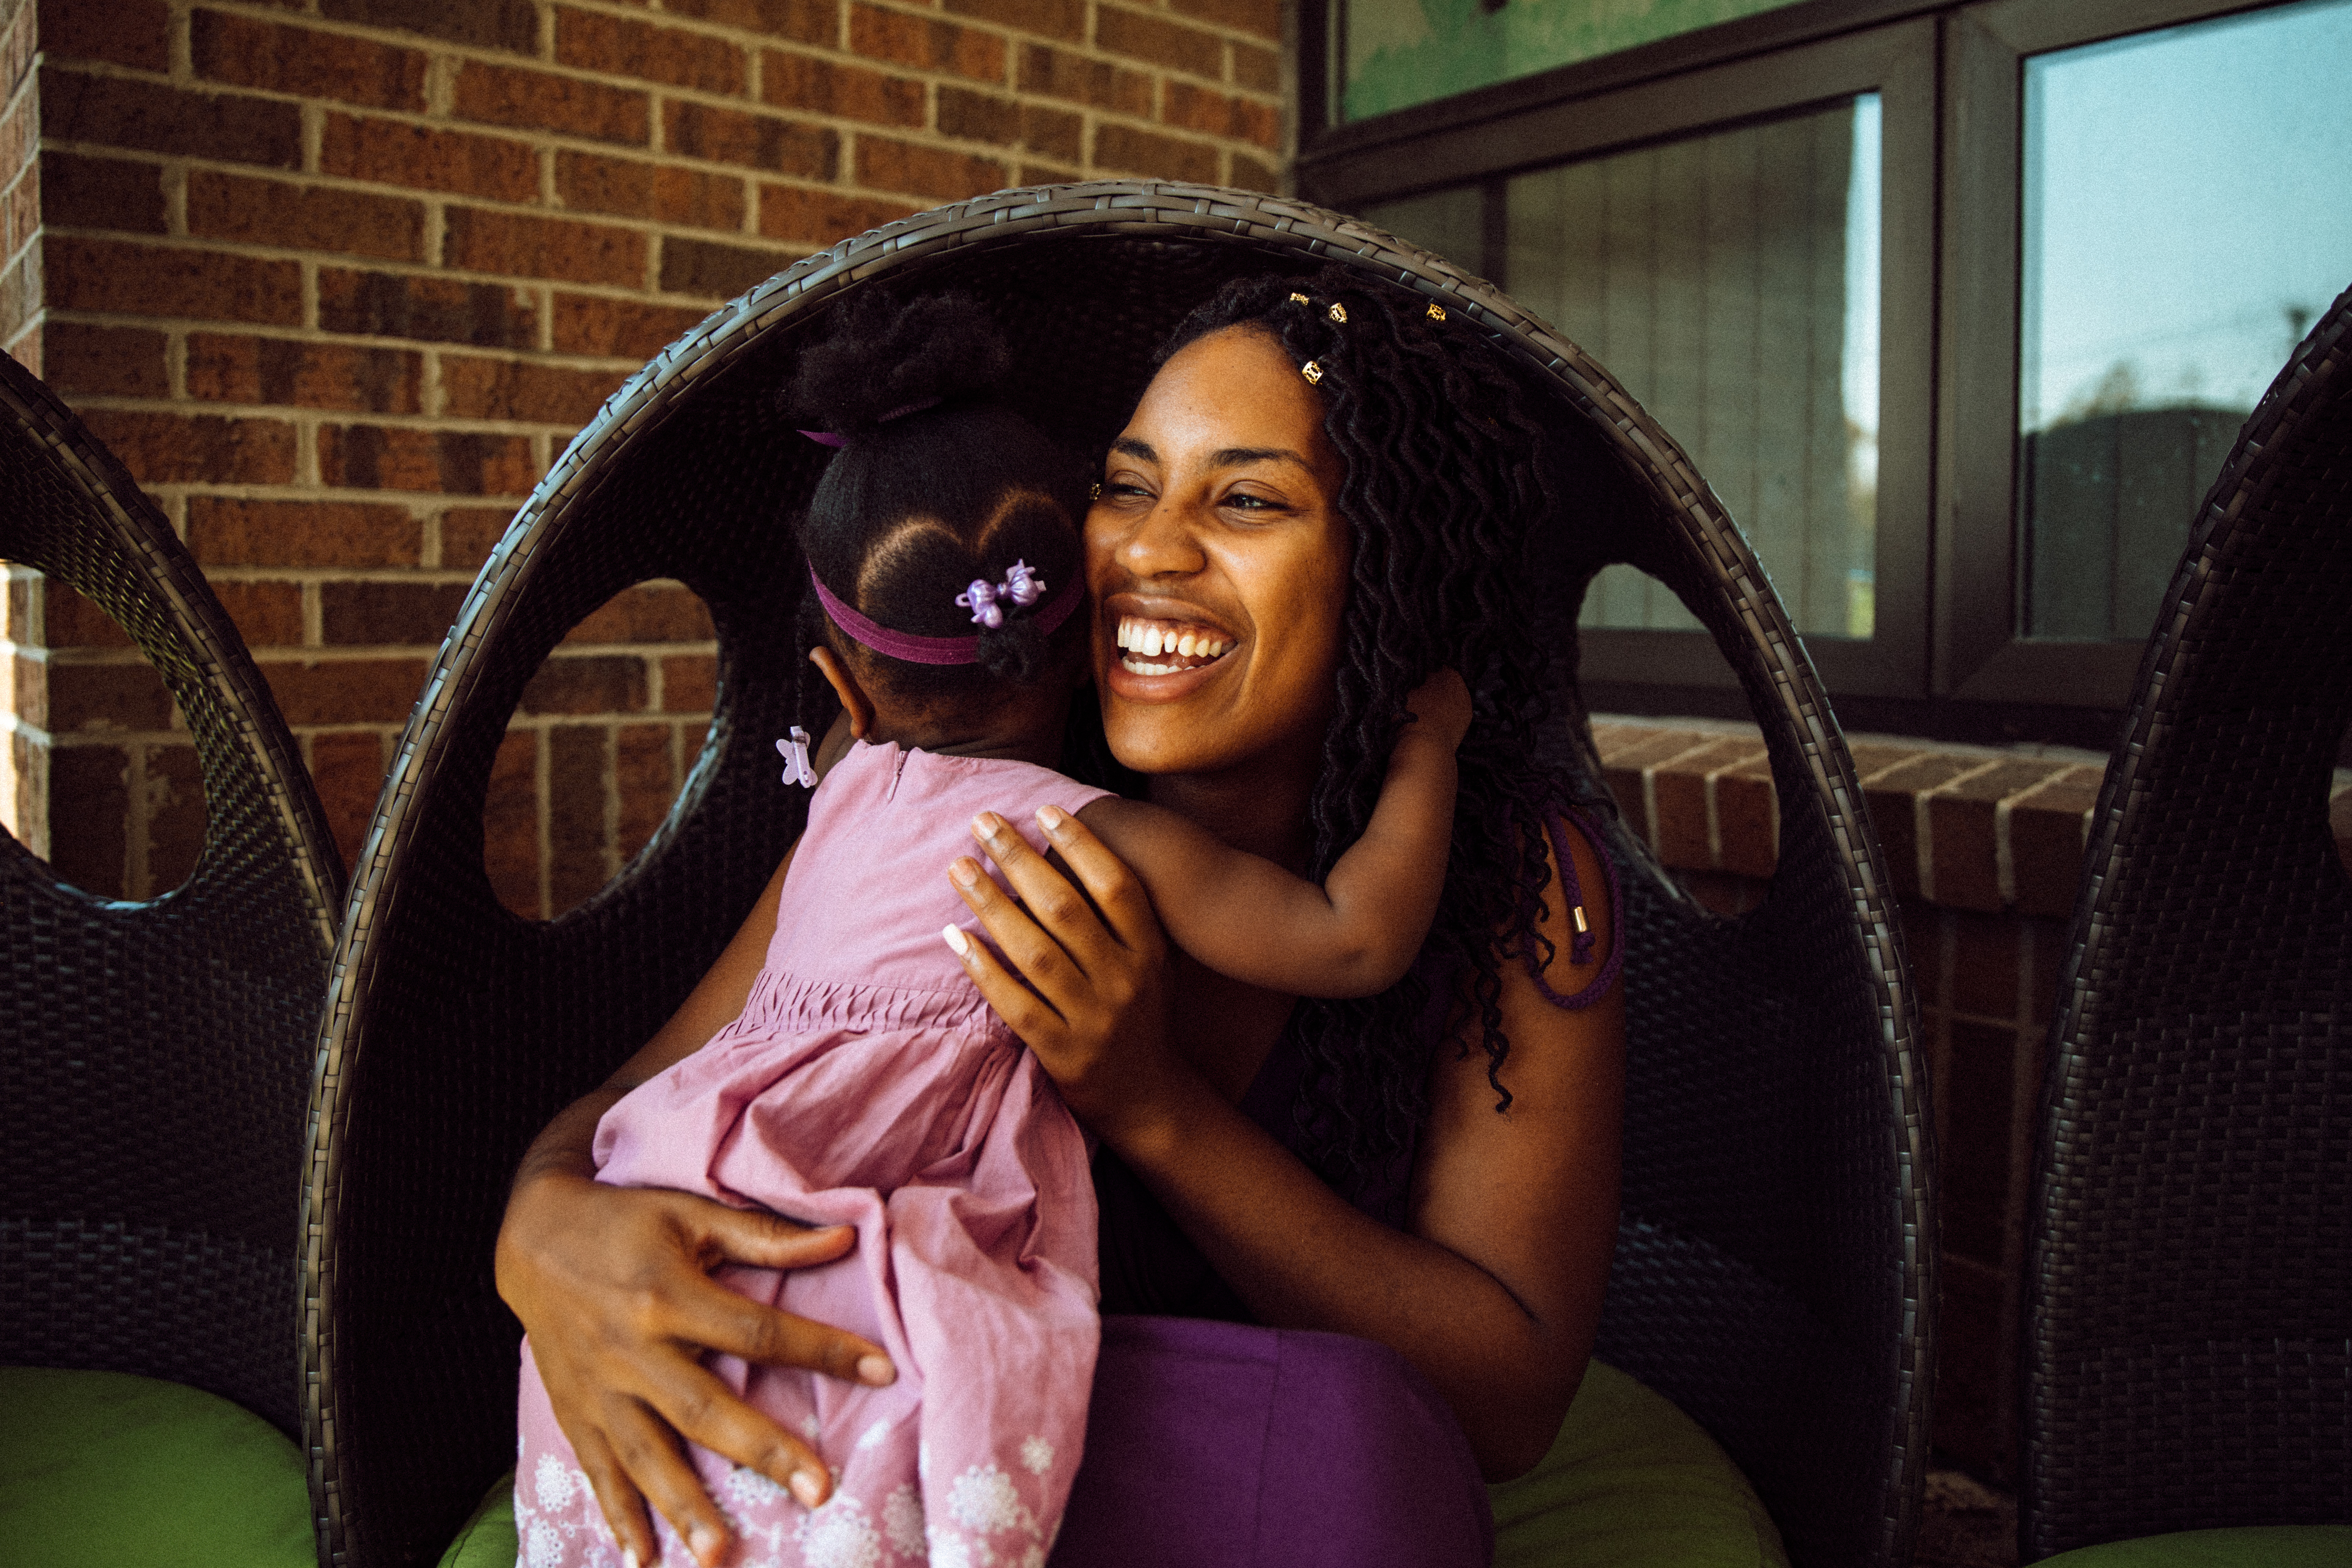 Victoria Washington smiles while giving her daughter a hug